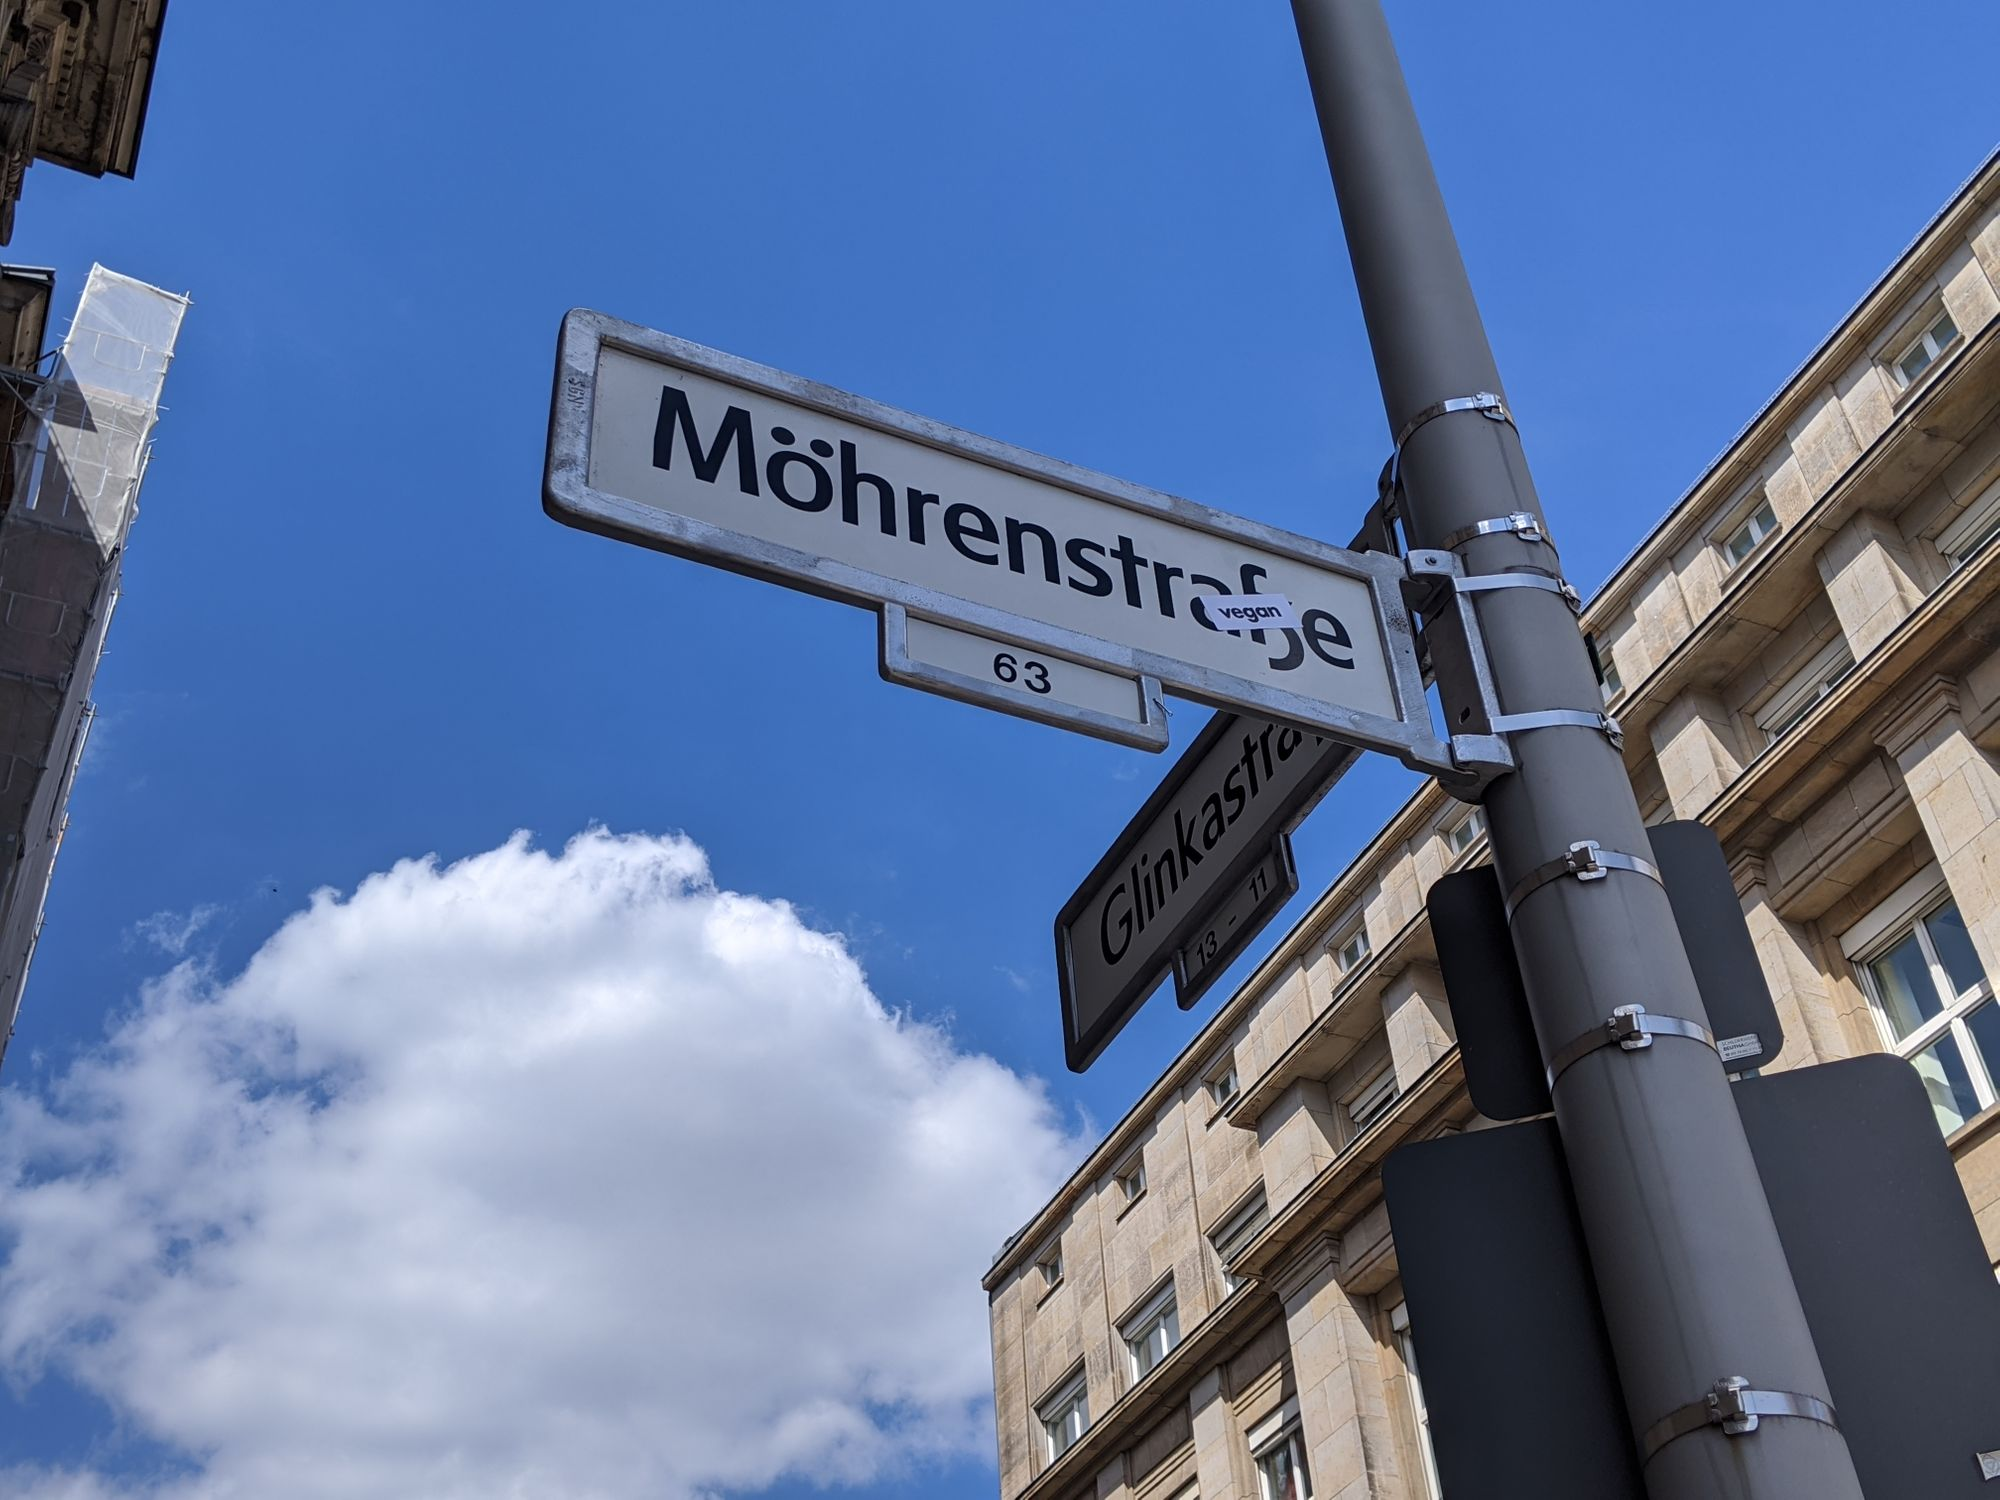 Berlin's street names: addressing Germany's colonial past